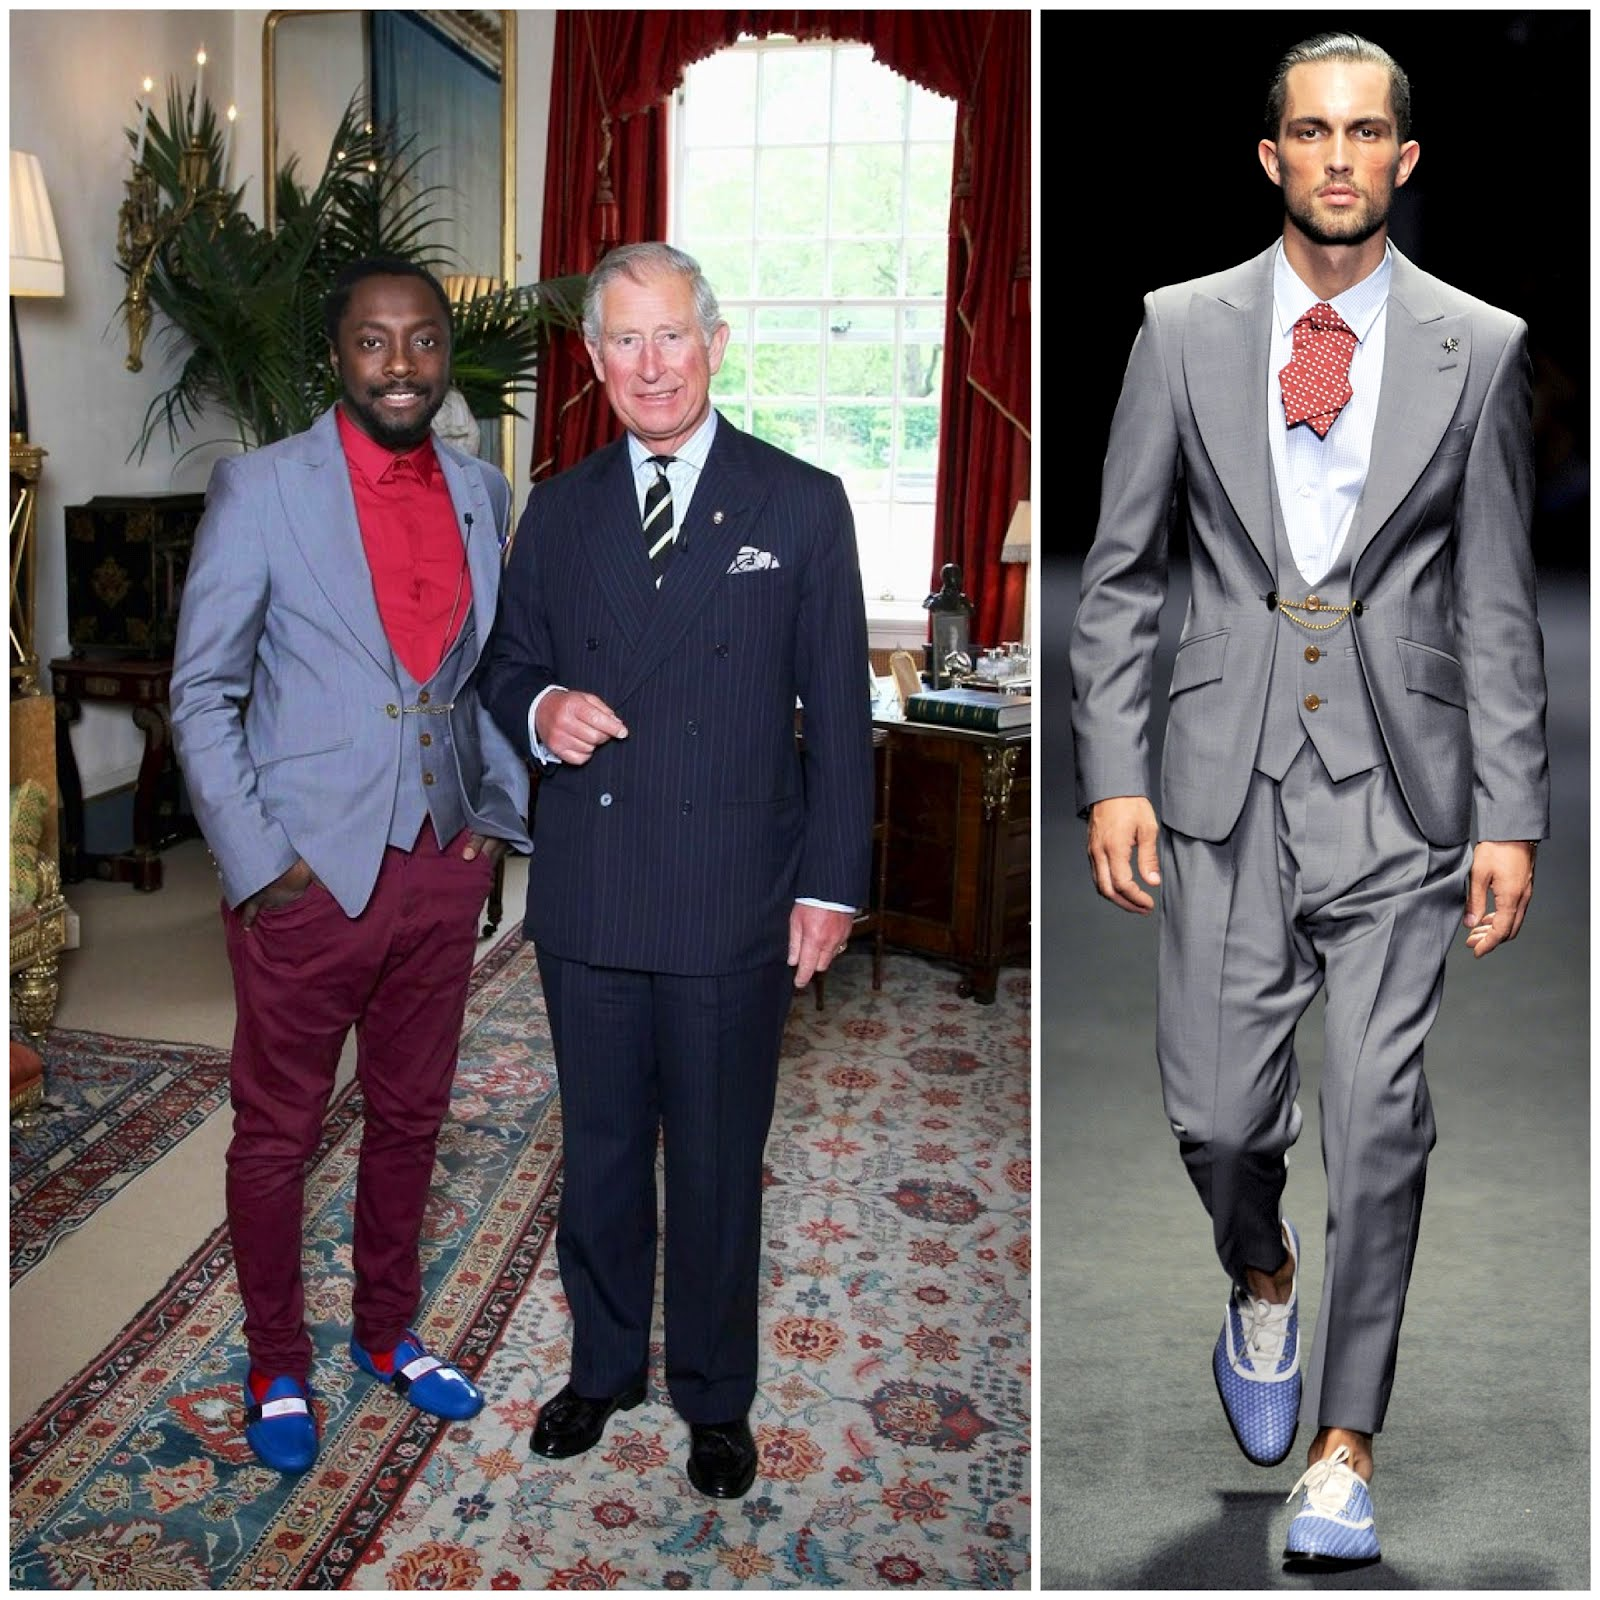 00o00 menswear london blog fashion style will.i.am buckingham palace meeting Prince Charles in Vivienne Westwood blazer waistcoat melissa shoes